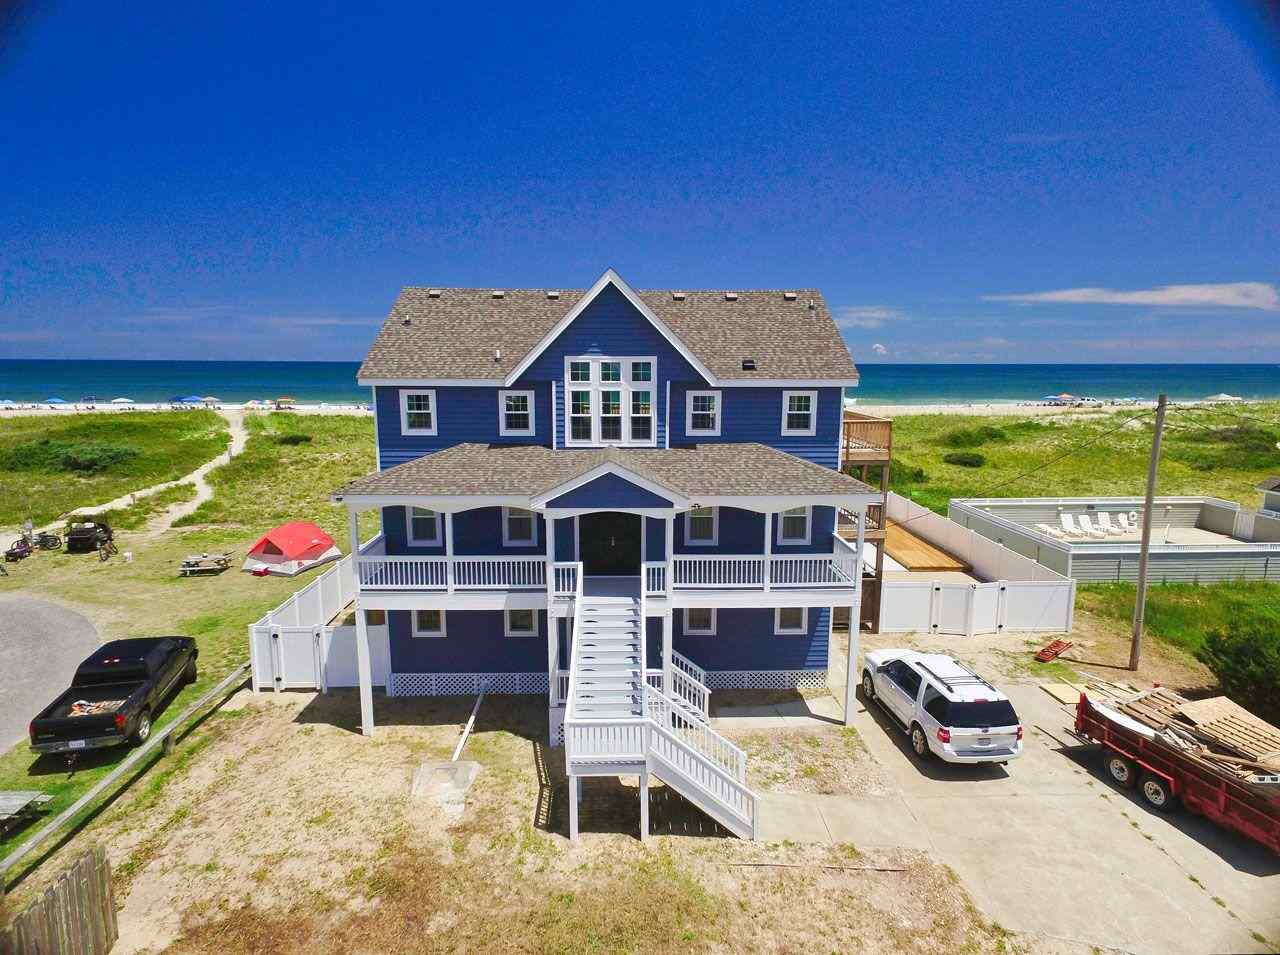 25251 Lee ONeal Lane Lot: 3, Waves, NC 27982